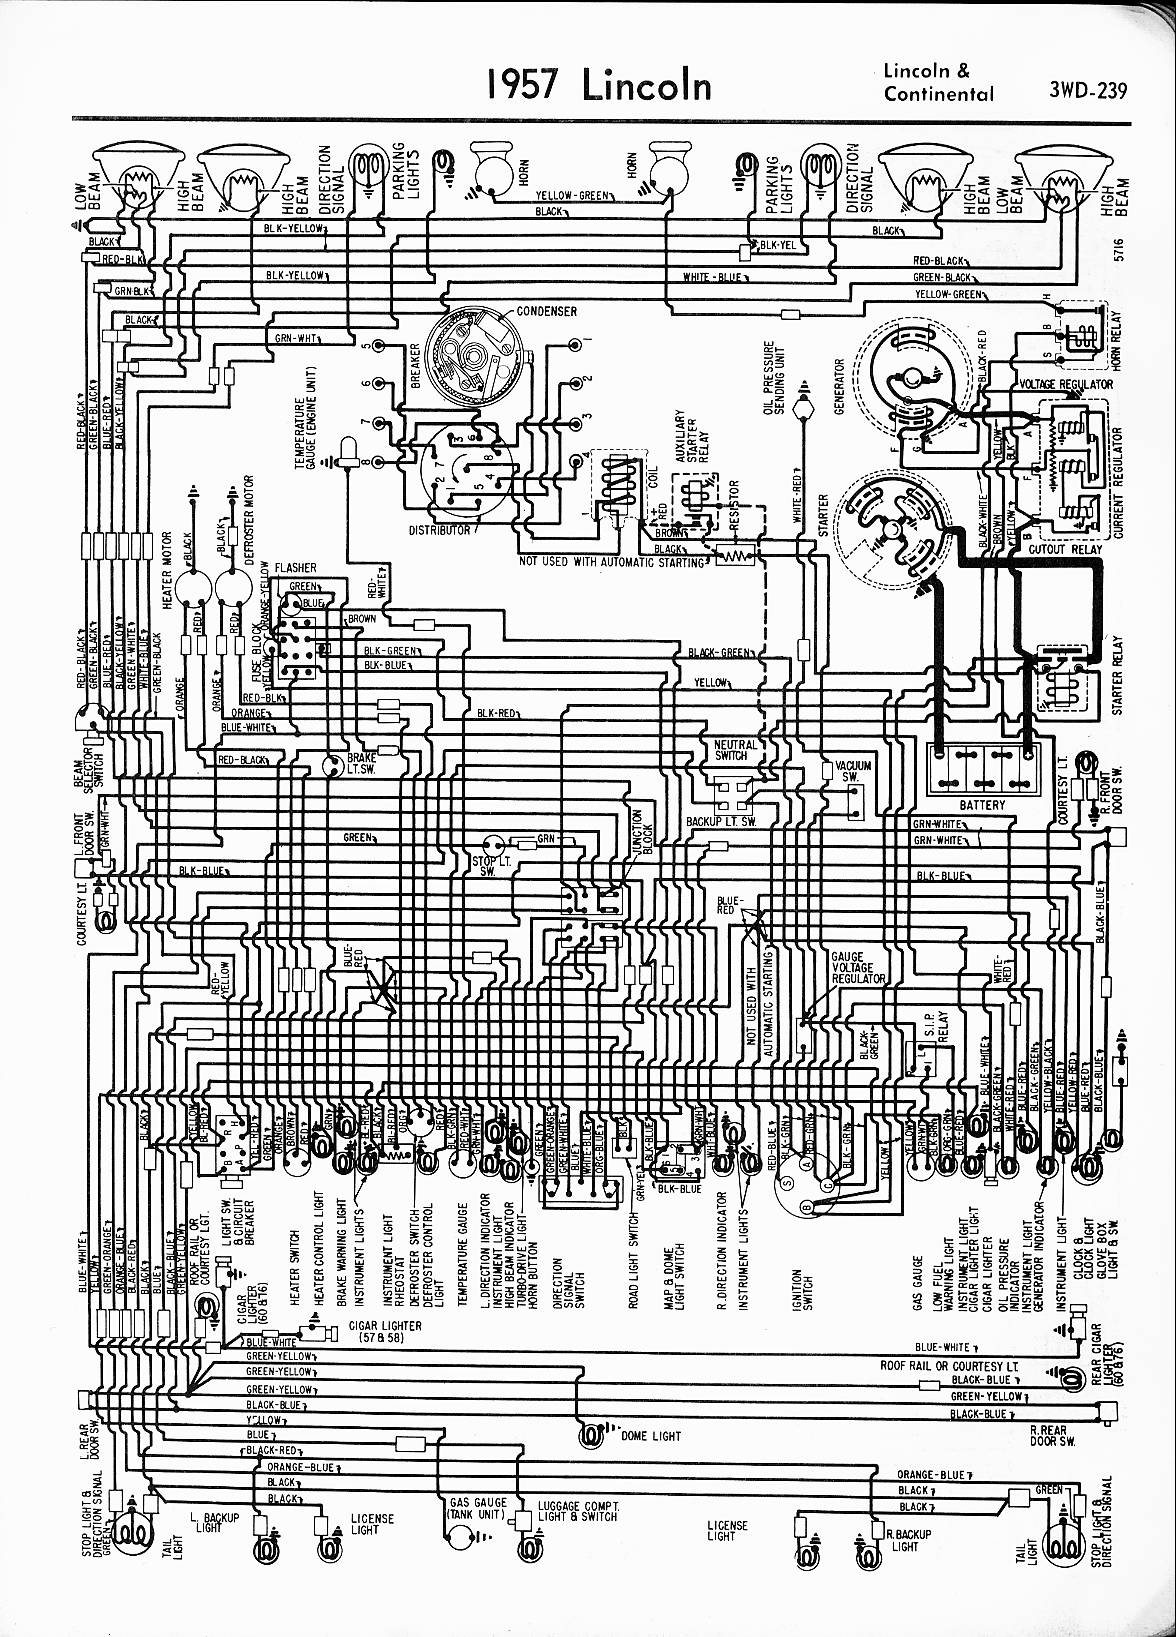 MWireLin_Lin57_z3wd 239z_001 lincoln wiring diagrams 1949 lincoln wiring diagram \u2022 free wiring 6 Pin Plug Wiring Diagram at suagrazia.org